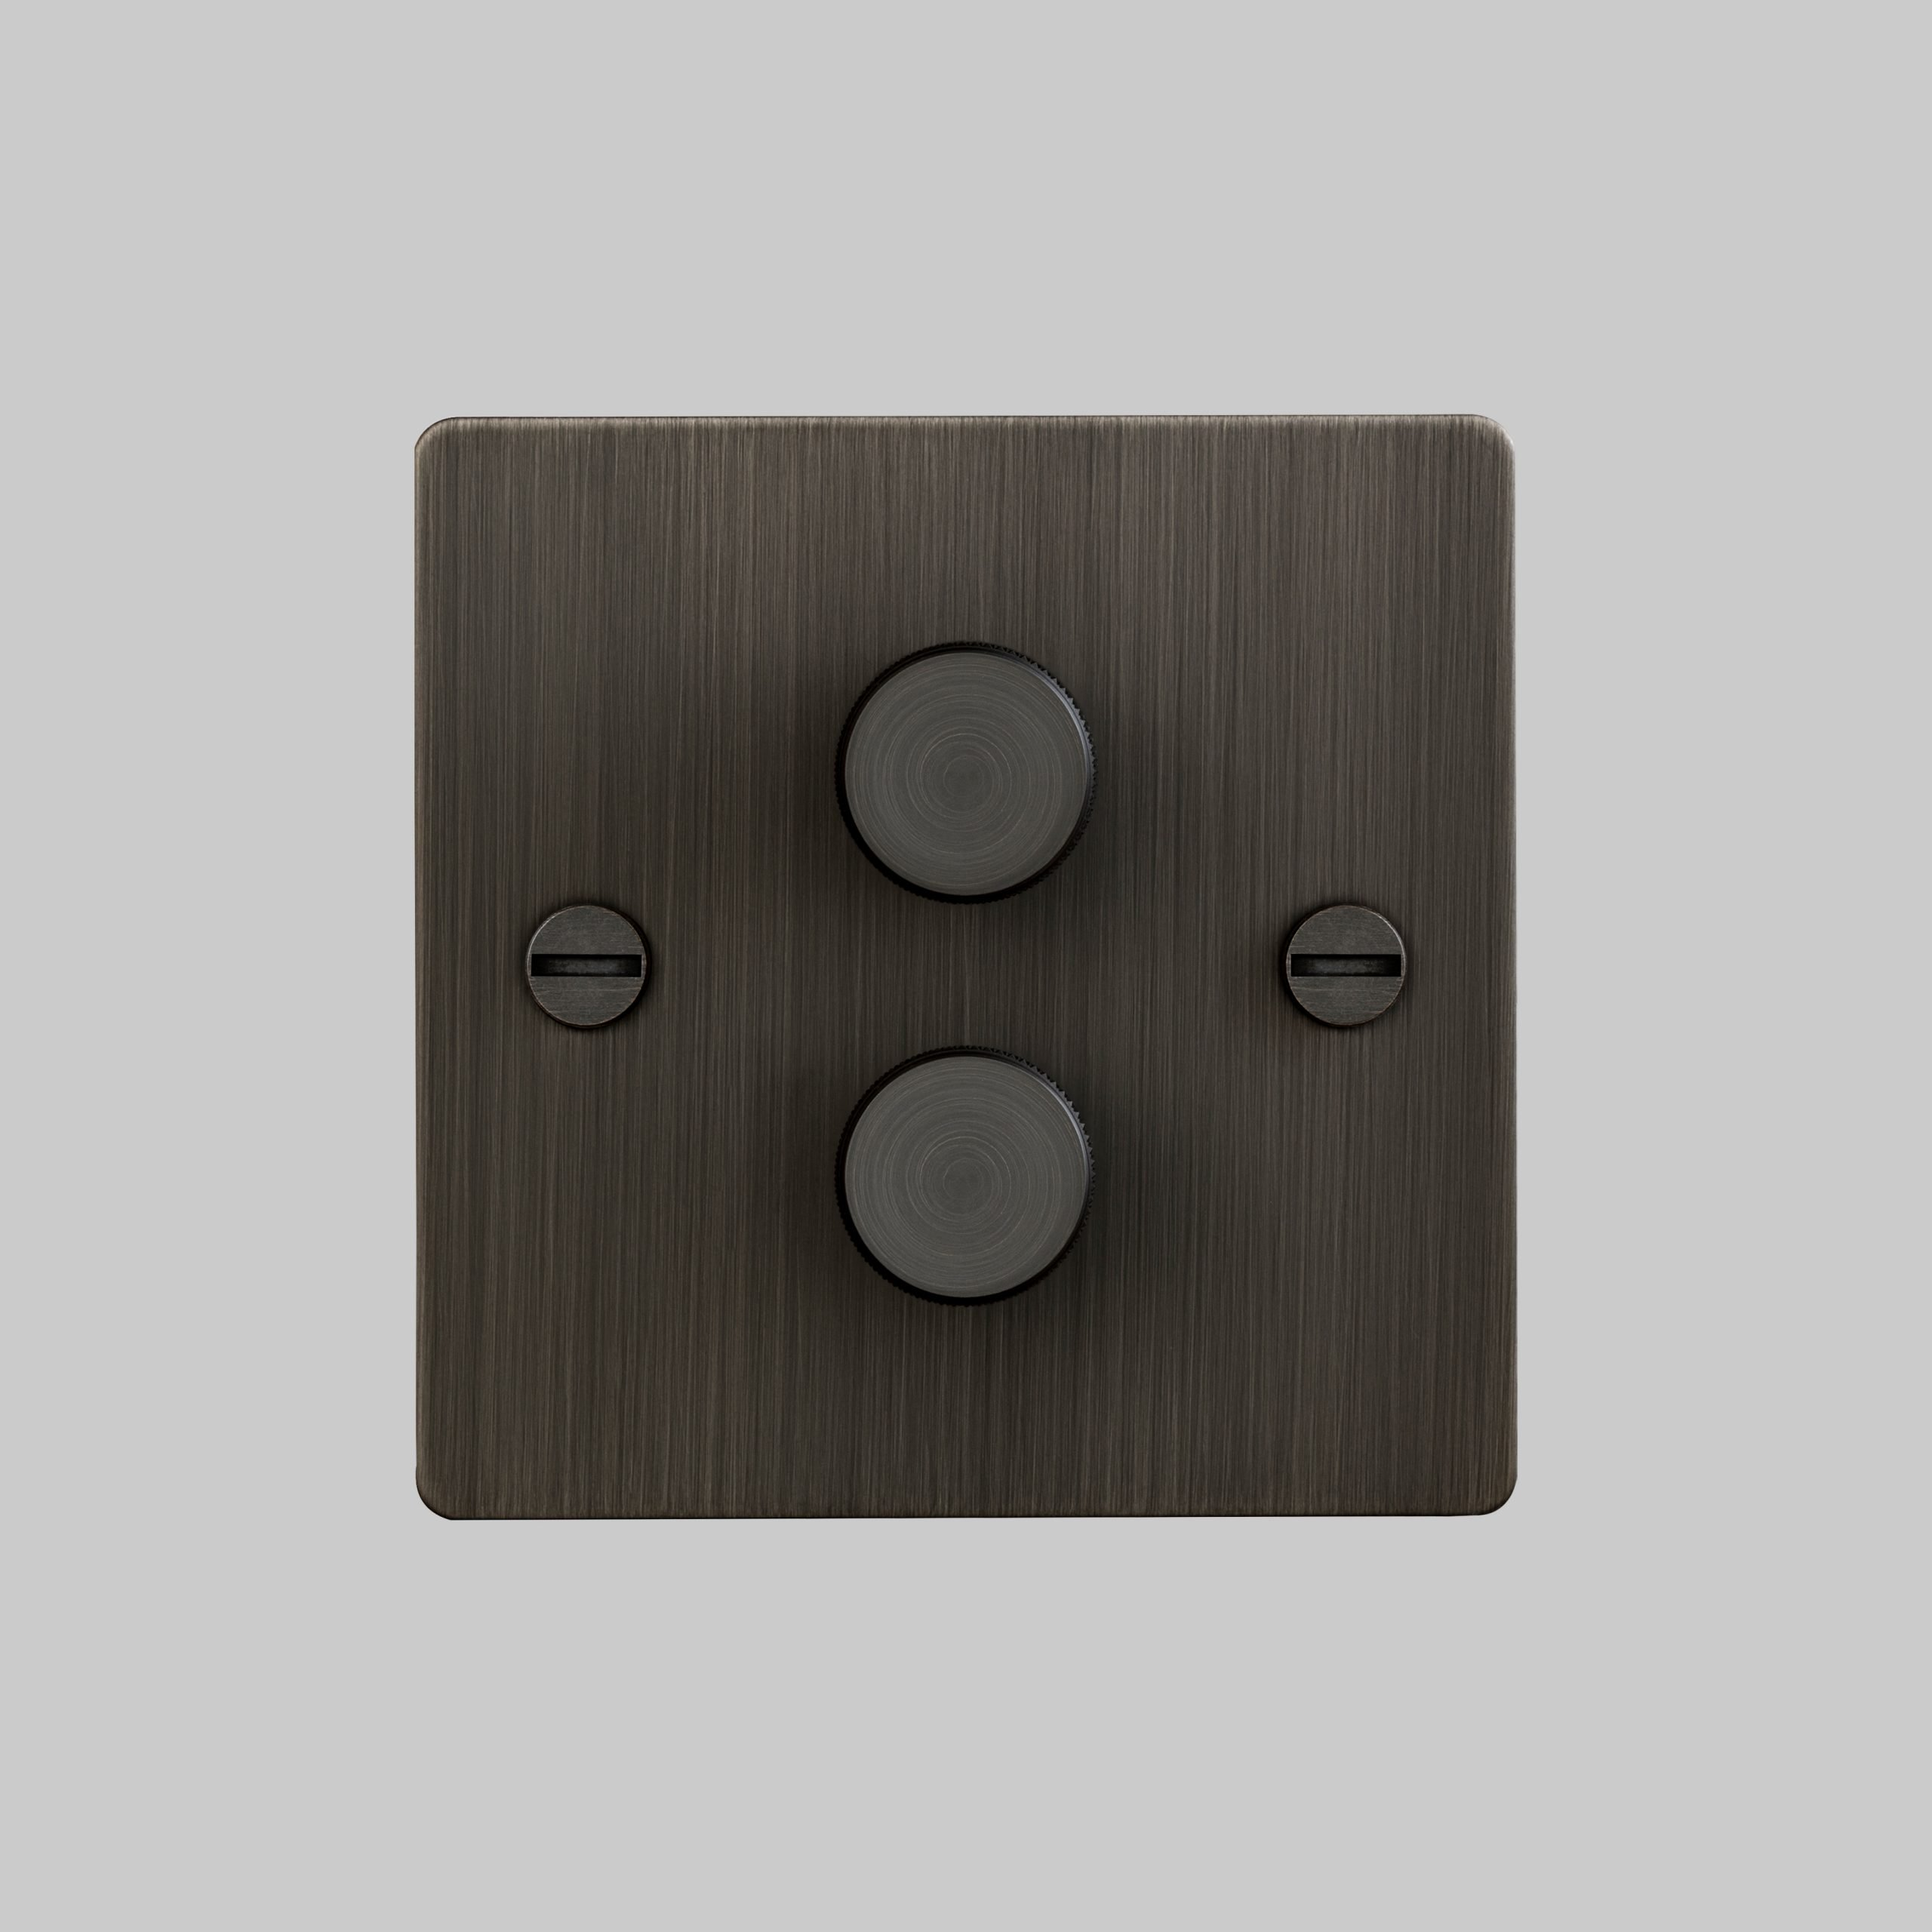 2. 2G_Dimmer_Front_Smoked_Bronze